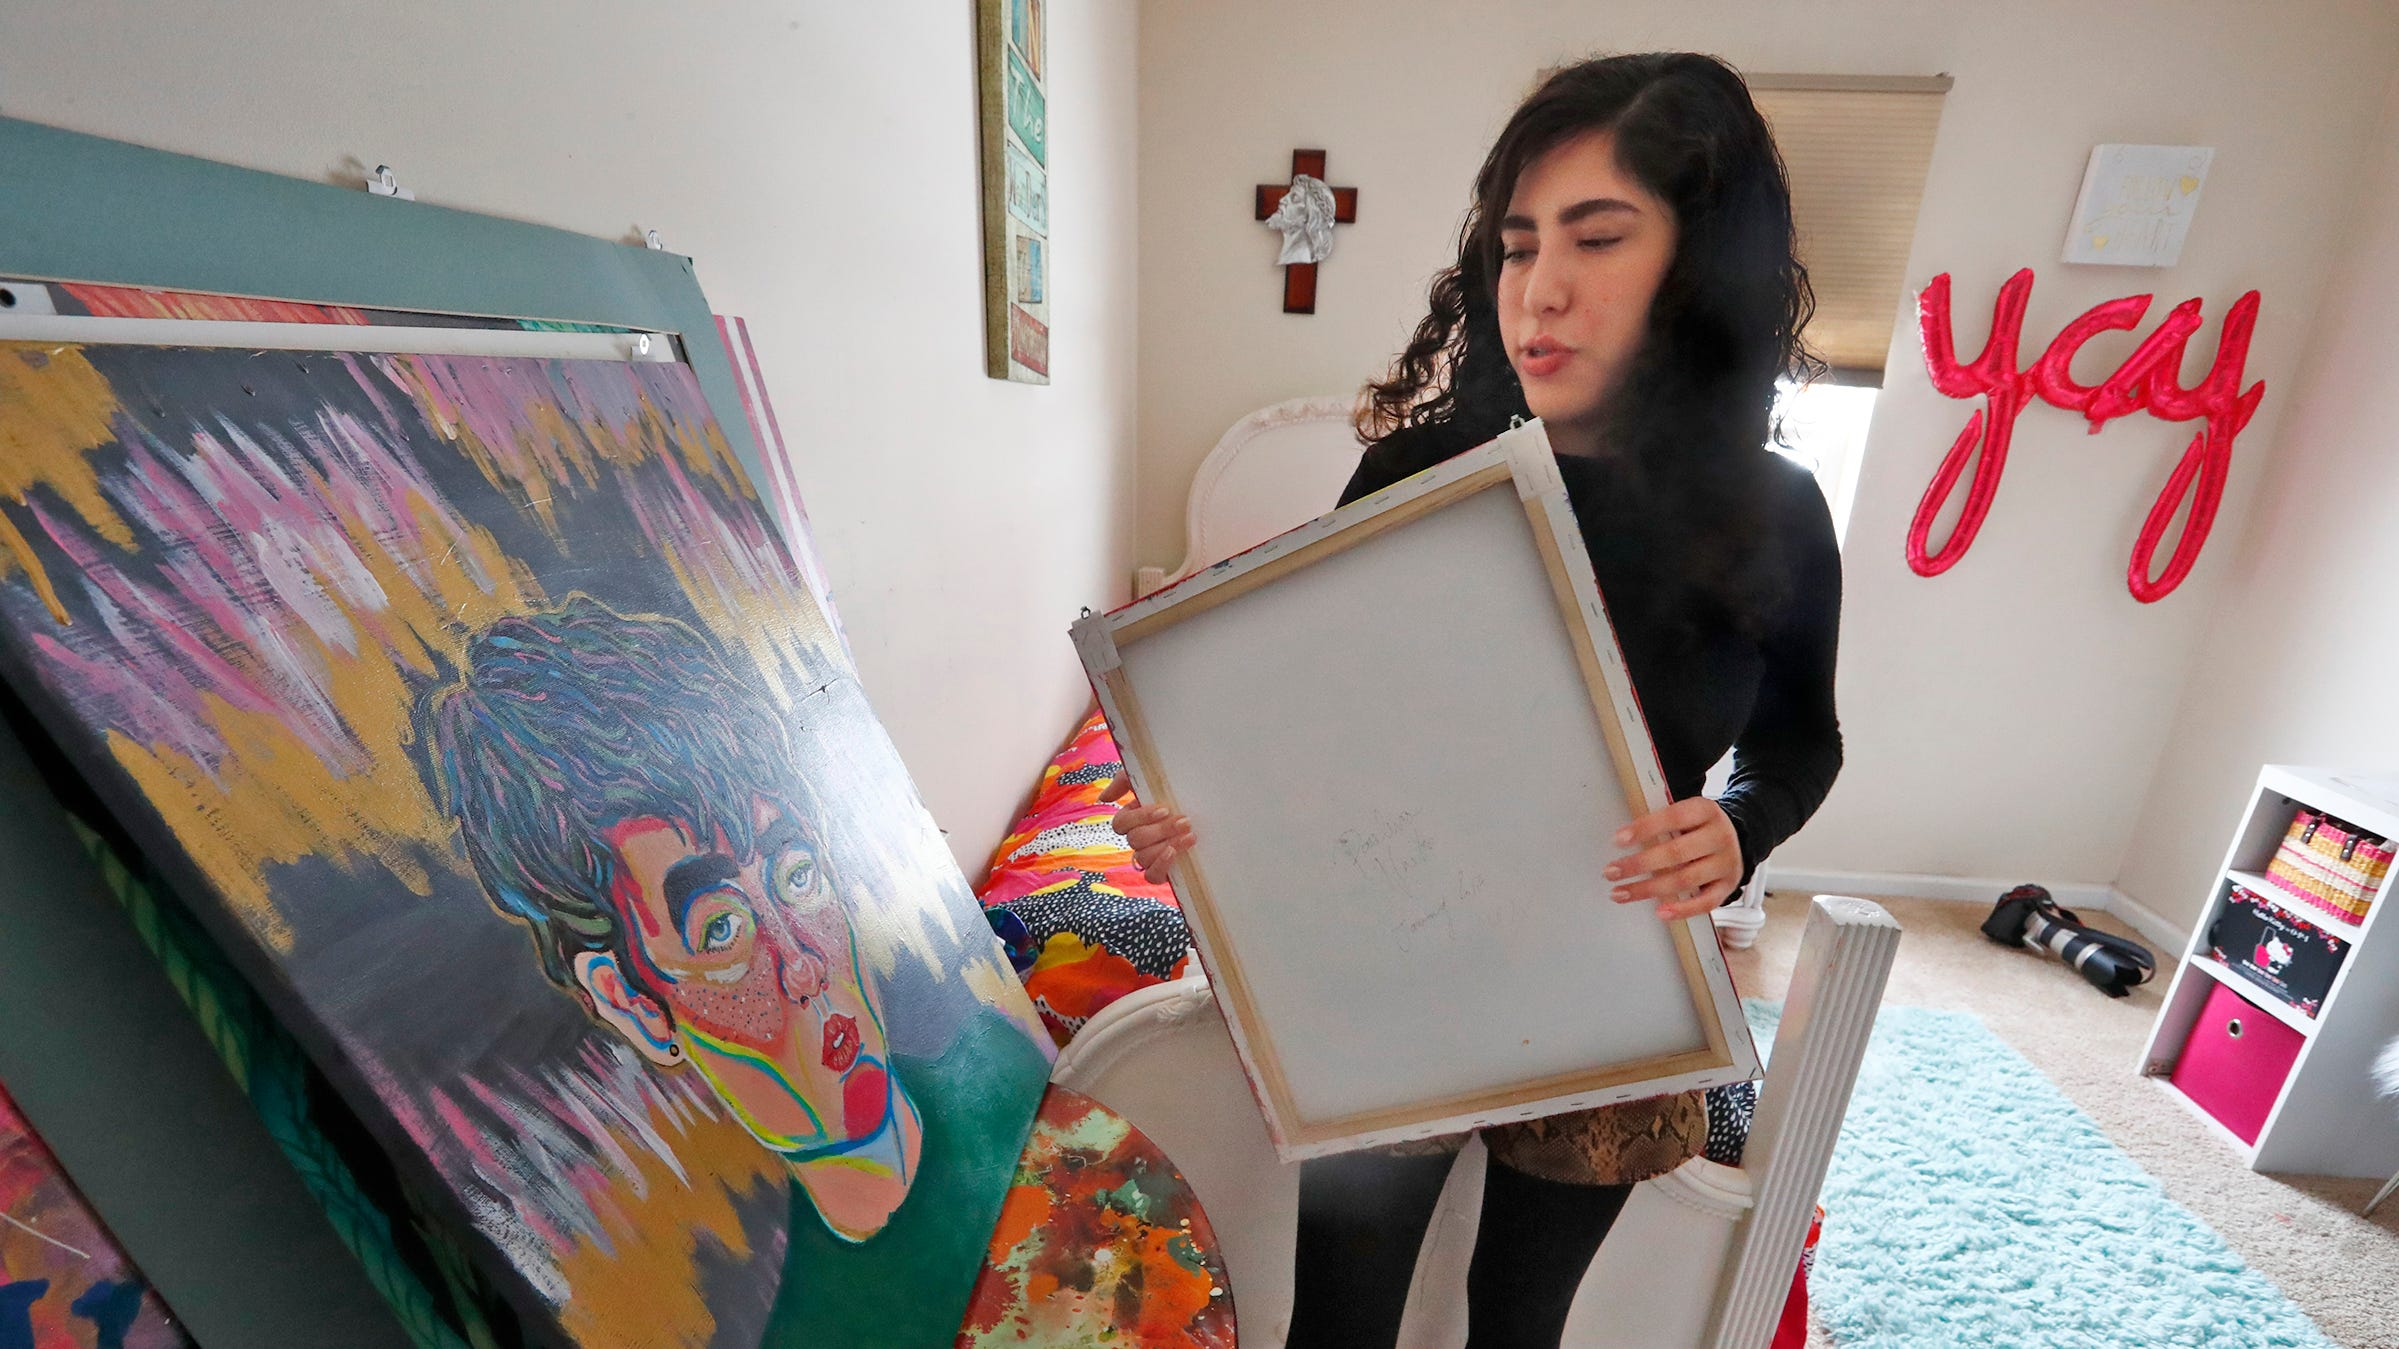 This teen was given a third chance on Earth. Here's why she's using it to teach art therapy.